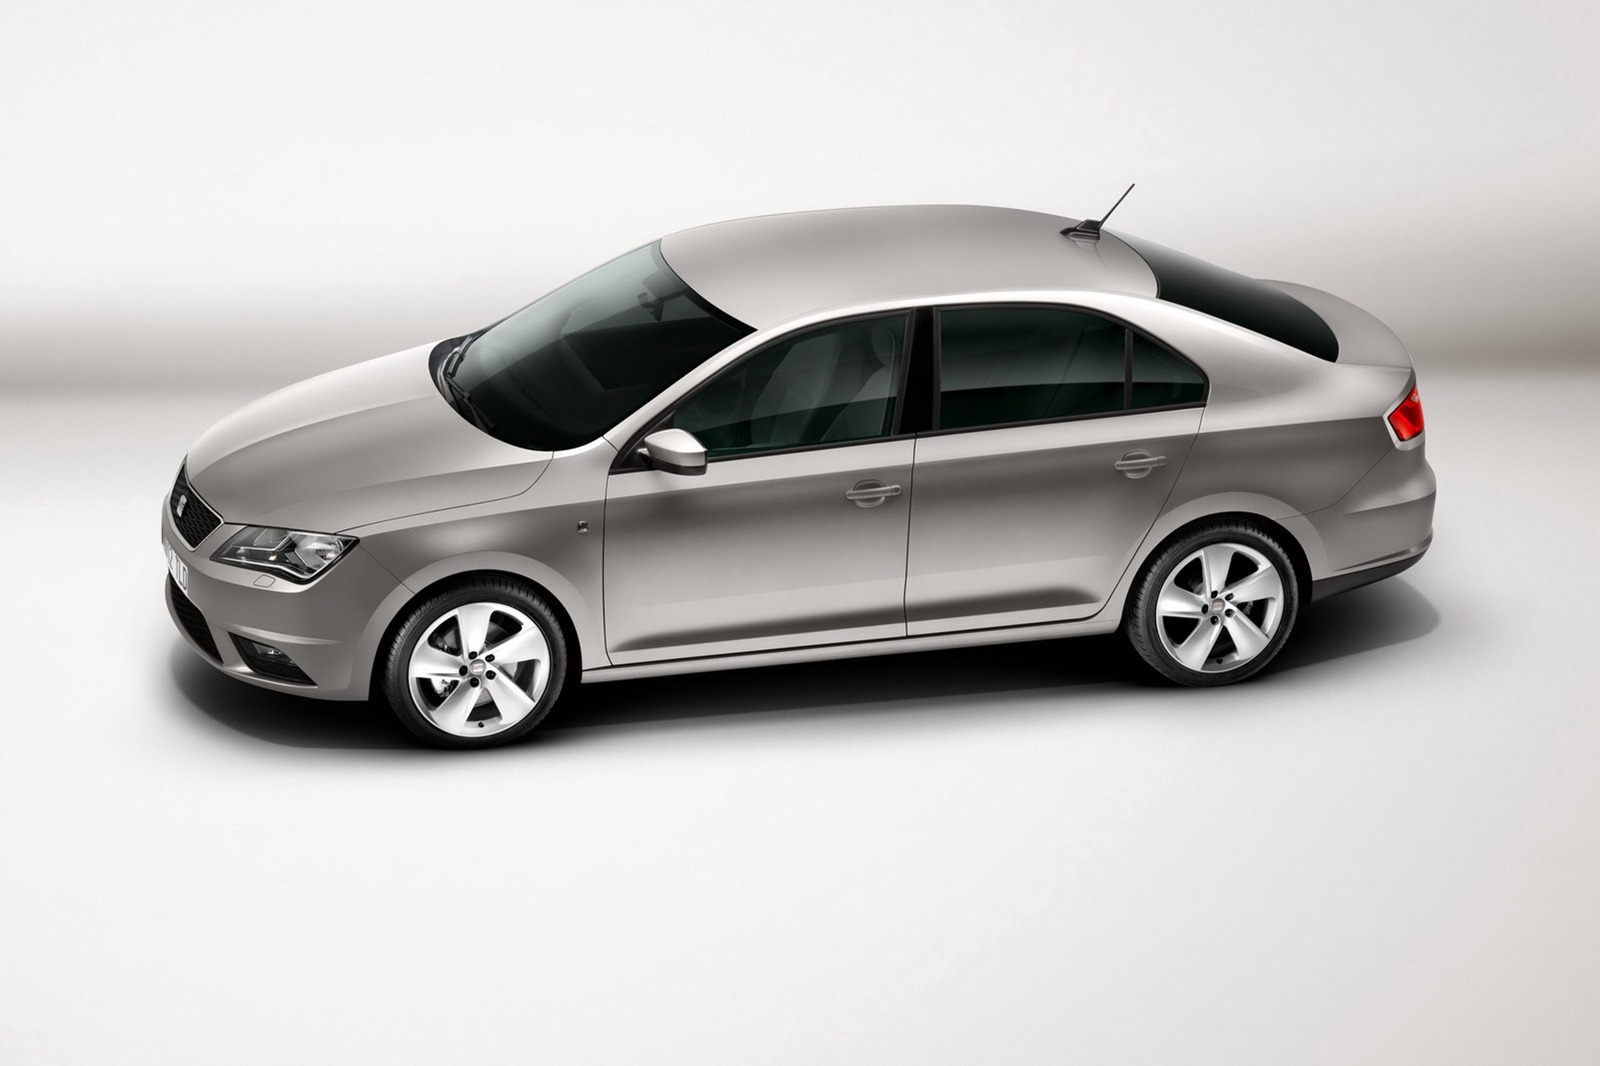 2013-Seat-Toledo-Sedan-Official-2.jpg?imgmax=1800